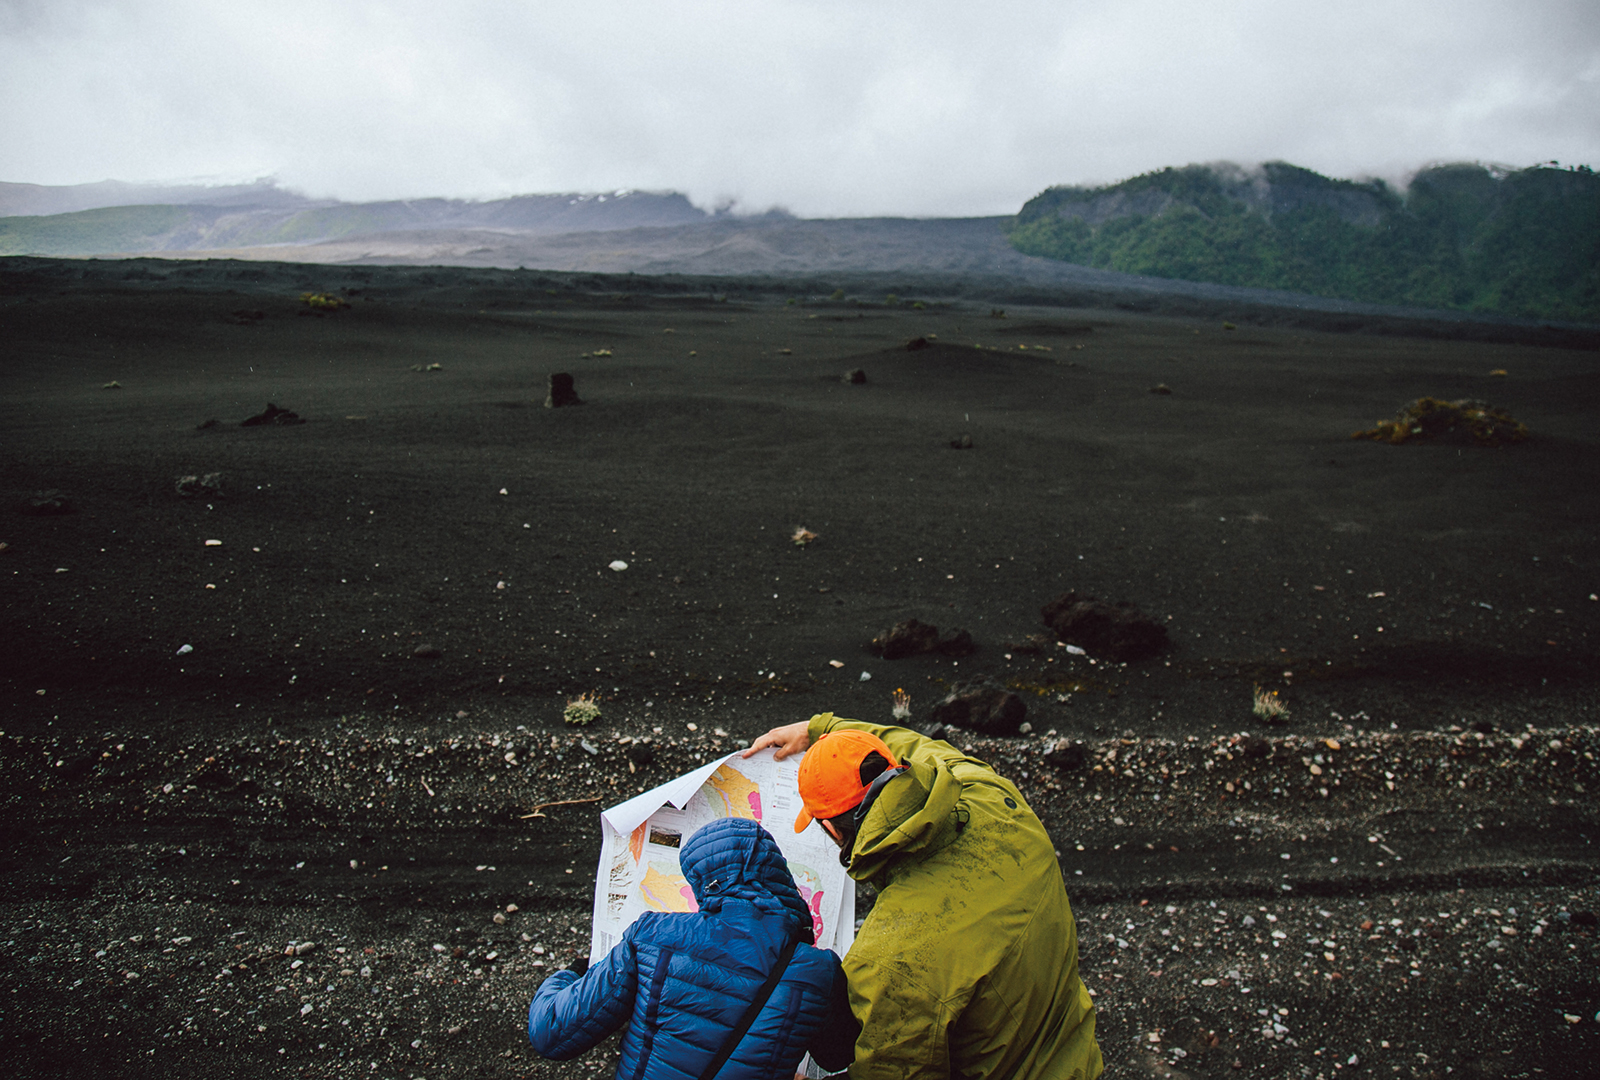 Dr. Brittany Brand & Aaron Marshall studying topographical maps at Llaima Volcano, Chile.